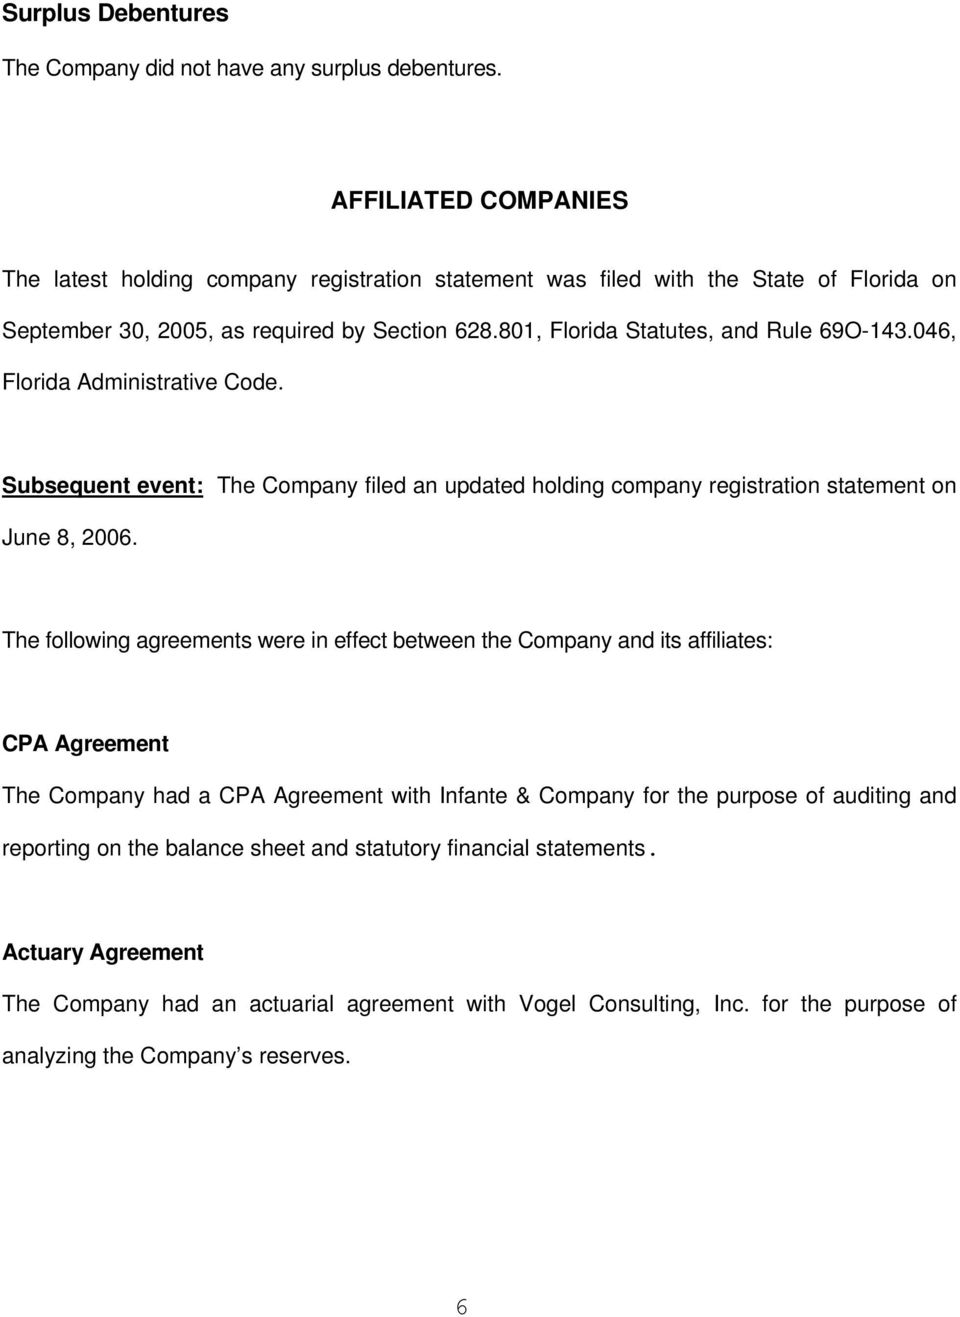 046, Florida Administrative Code. Subsequent event: The Company filed an updated holding company registration statement on June 8, 2006.